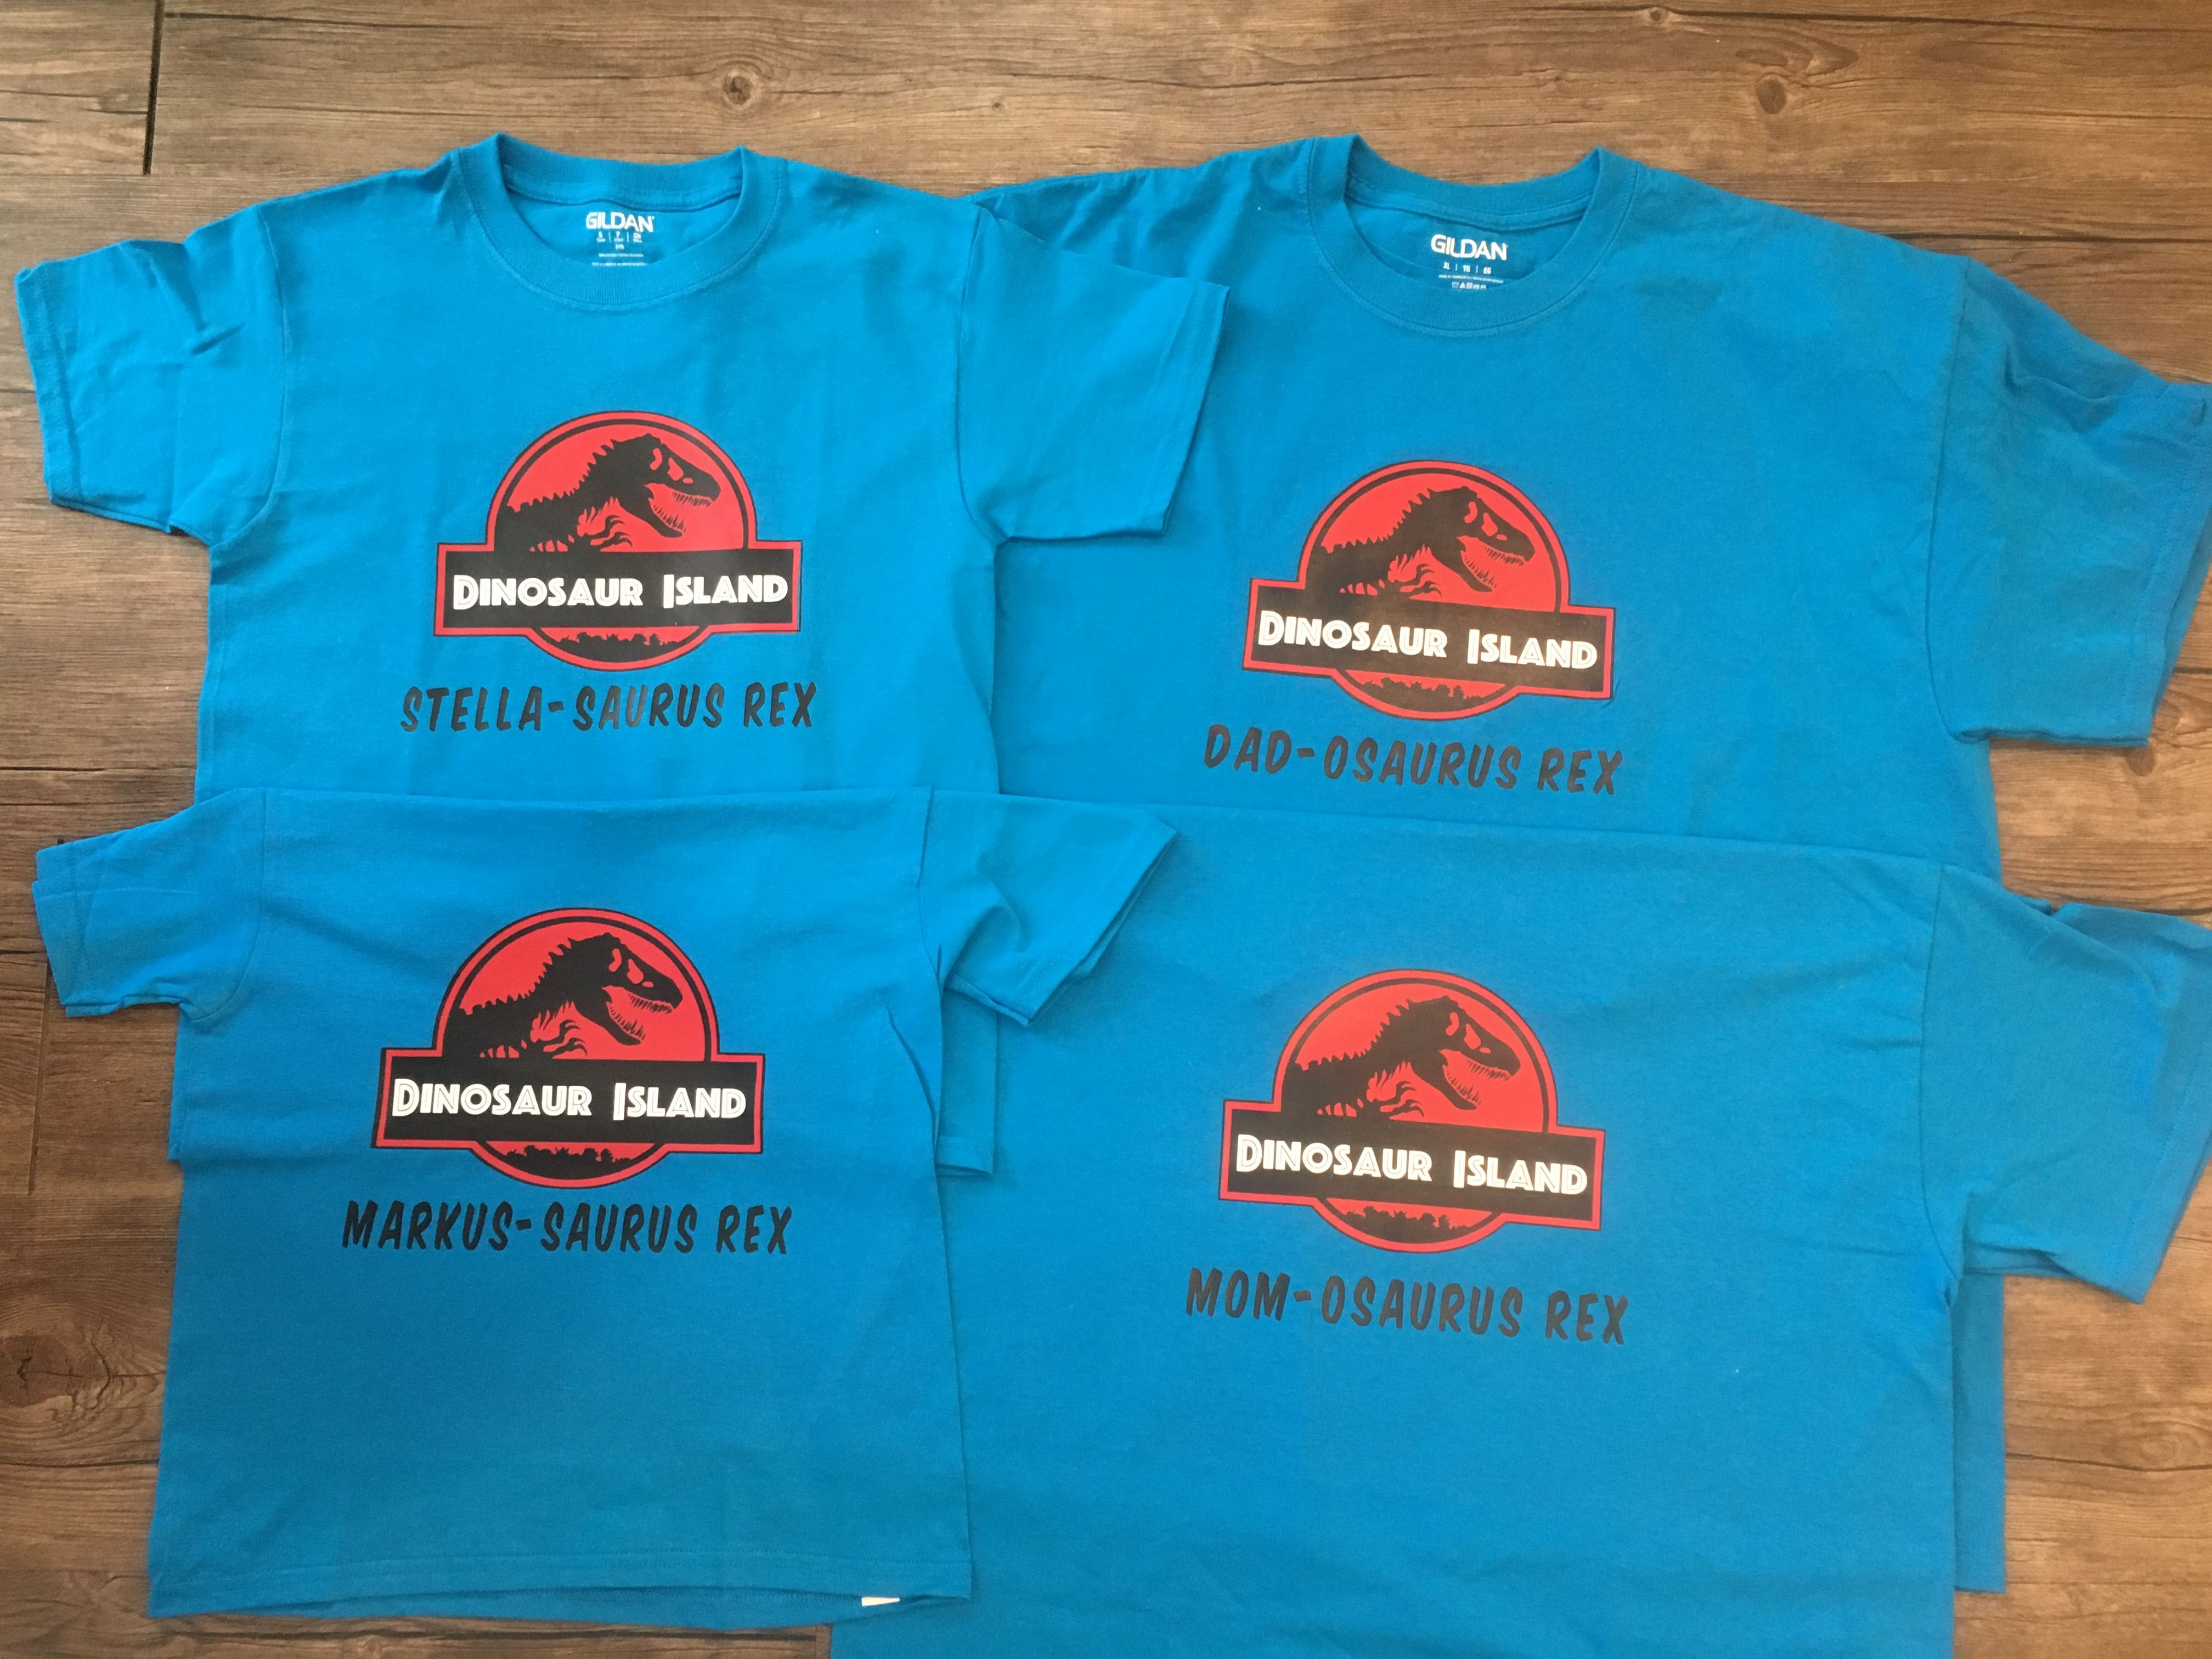 8705cedc0 Jurassic Park inspired family shirts for universal studios vacation.  Dinosaur Island!